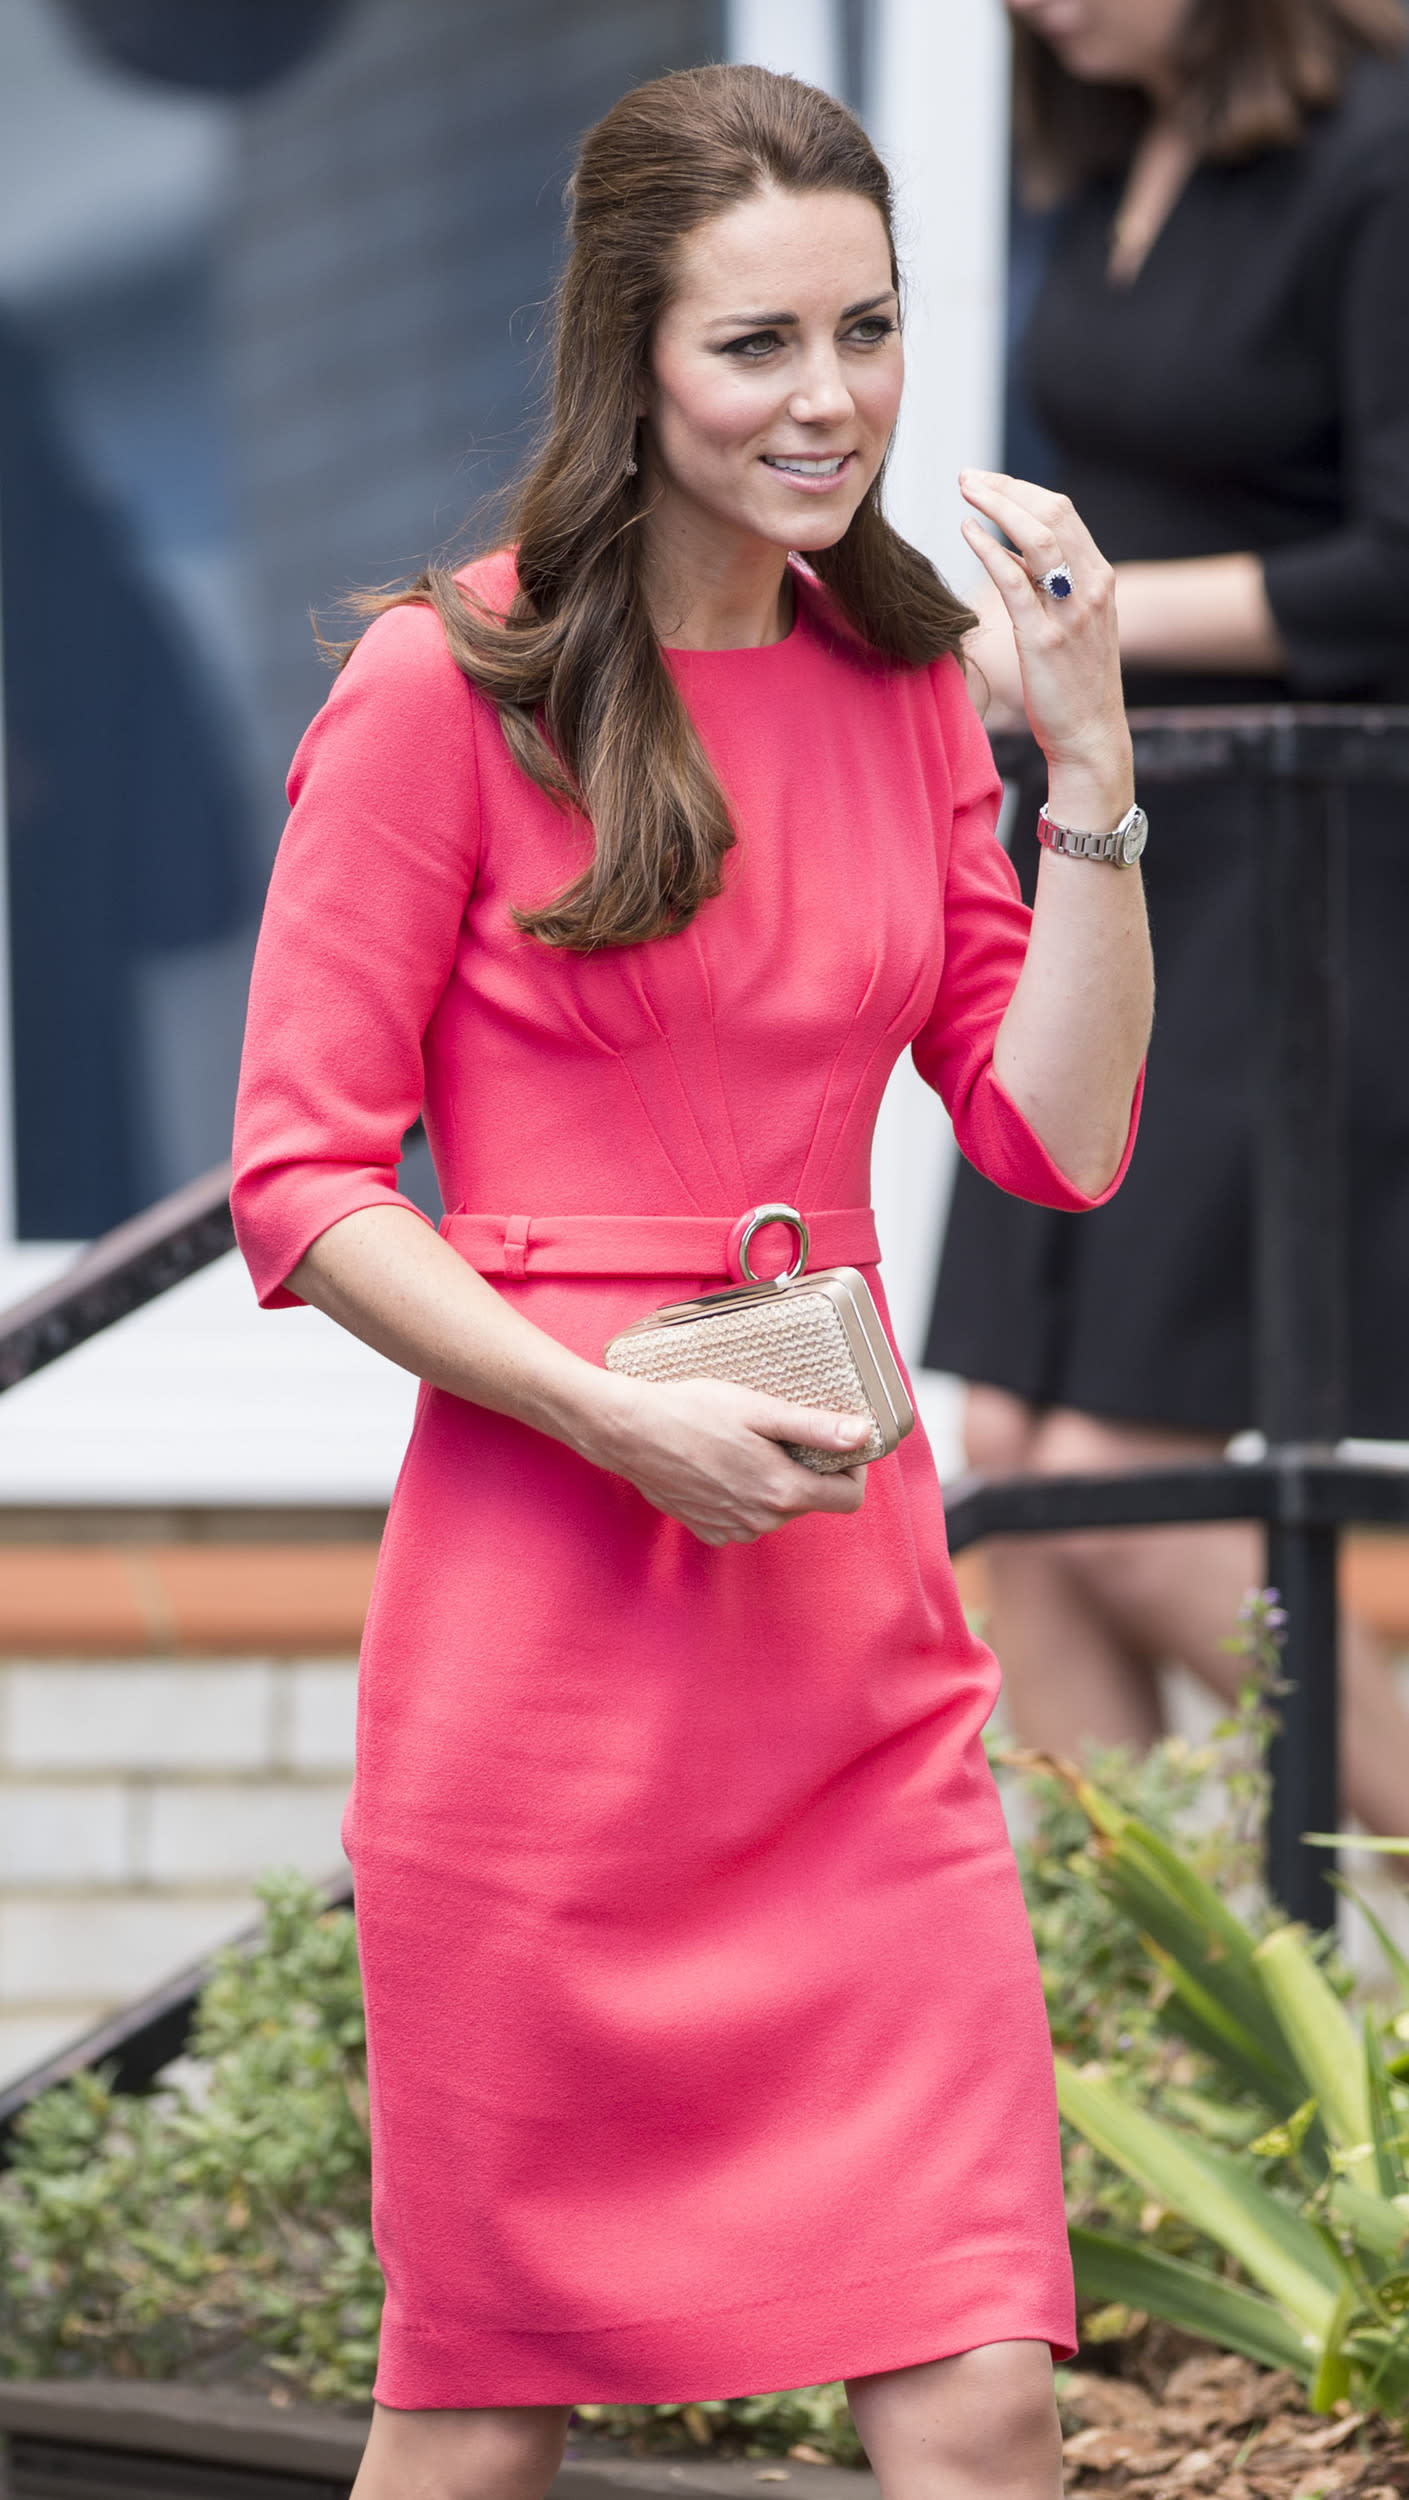 The Duchess of Cambridge visits an M-PACT Plus Counselling programme at Blessed Sacrament School on July 1st in a coral GOAT dress with cream clutch.